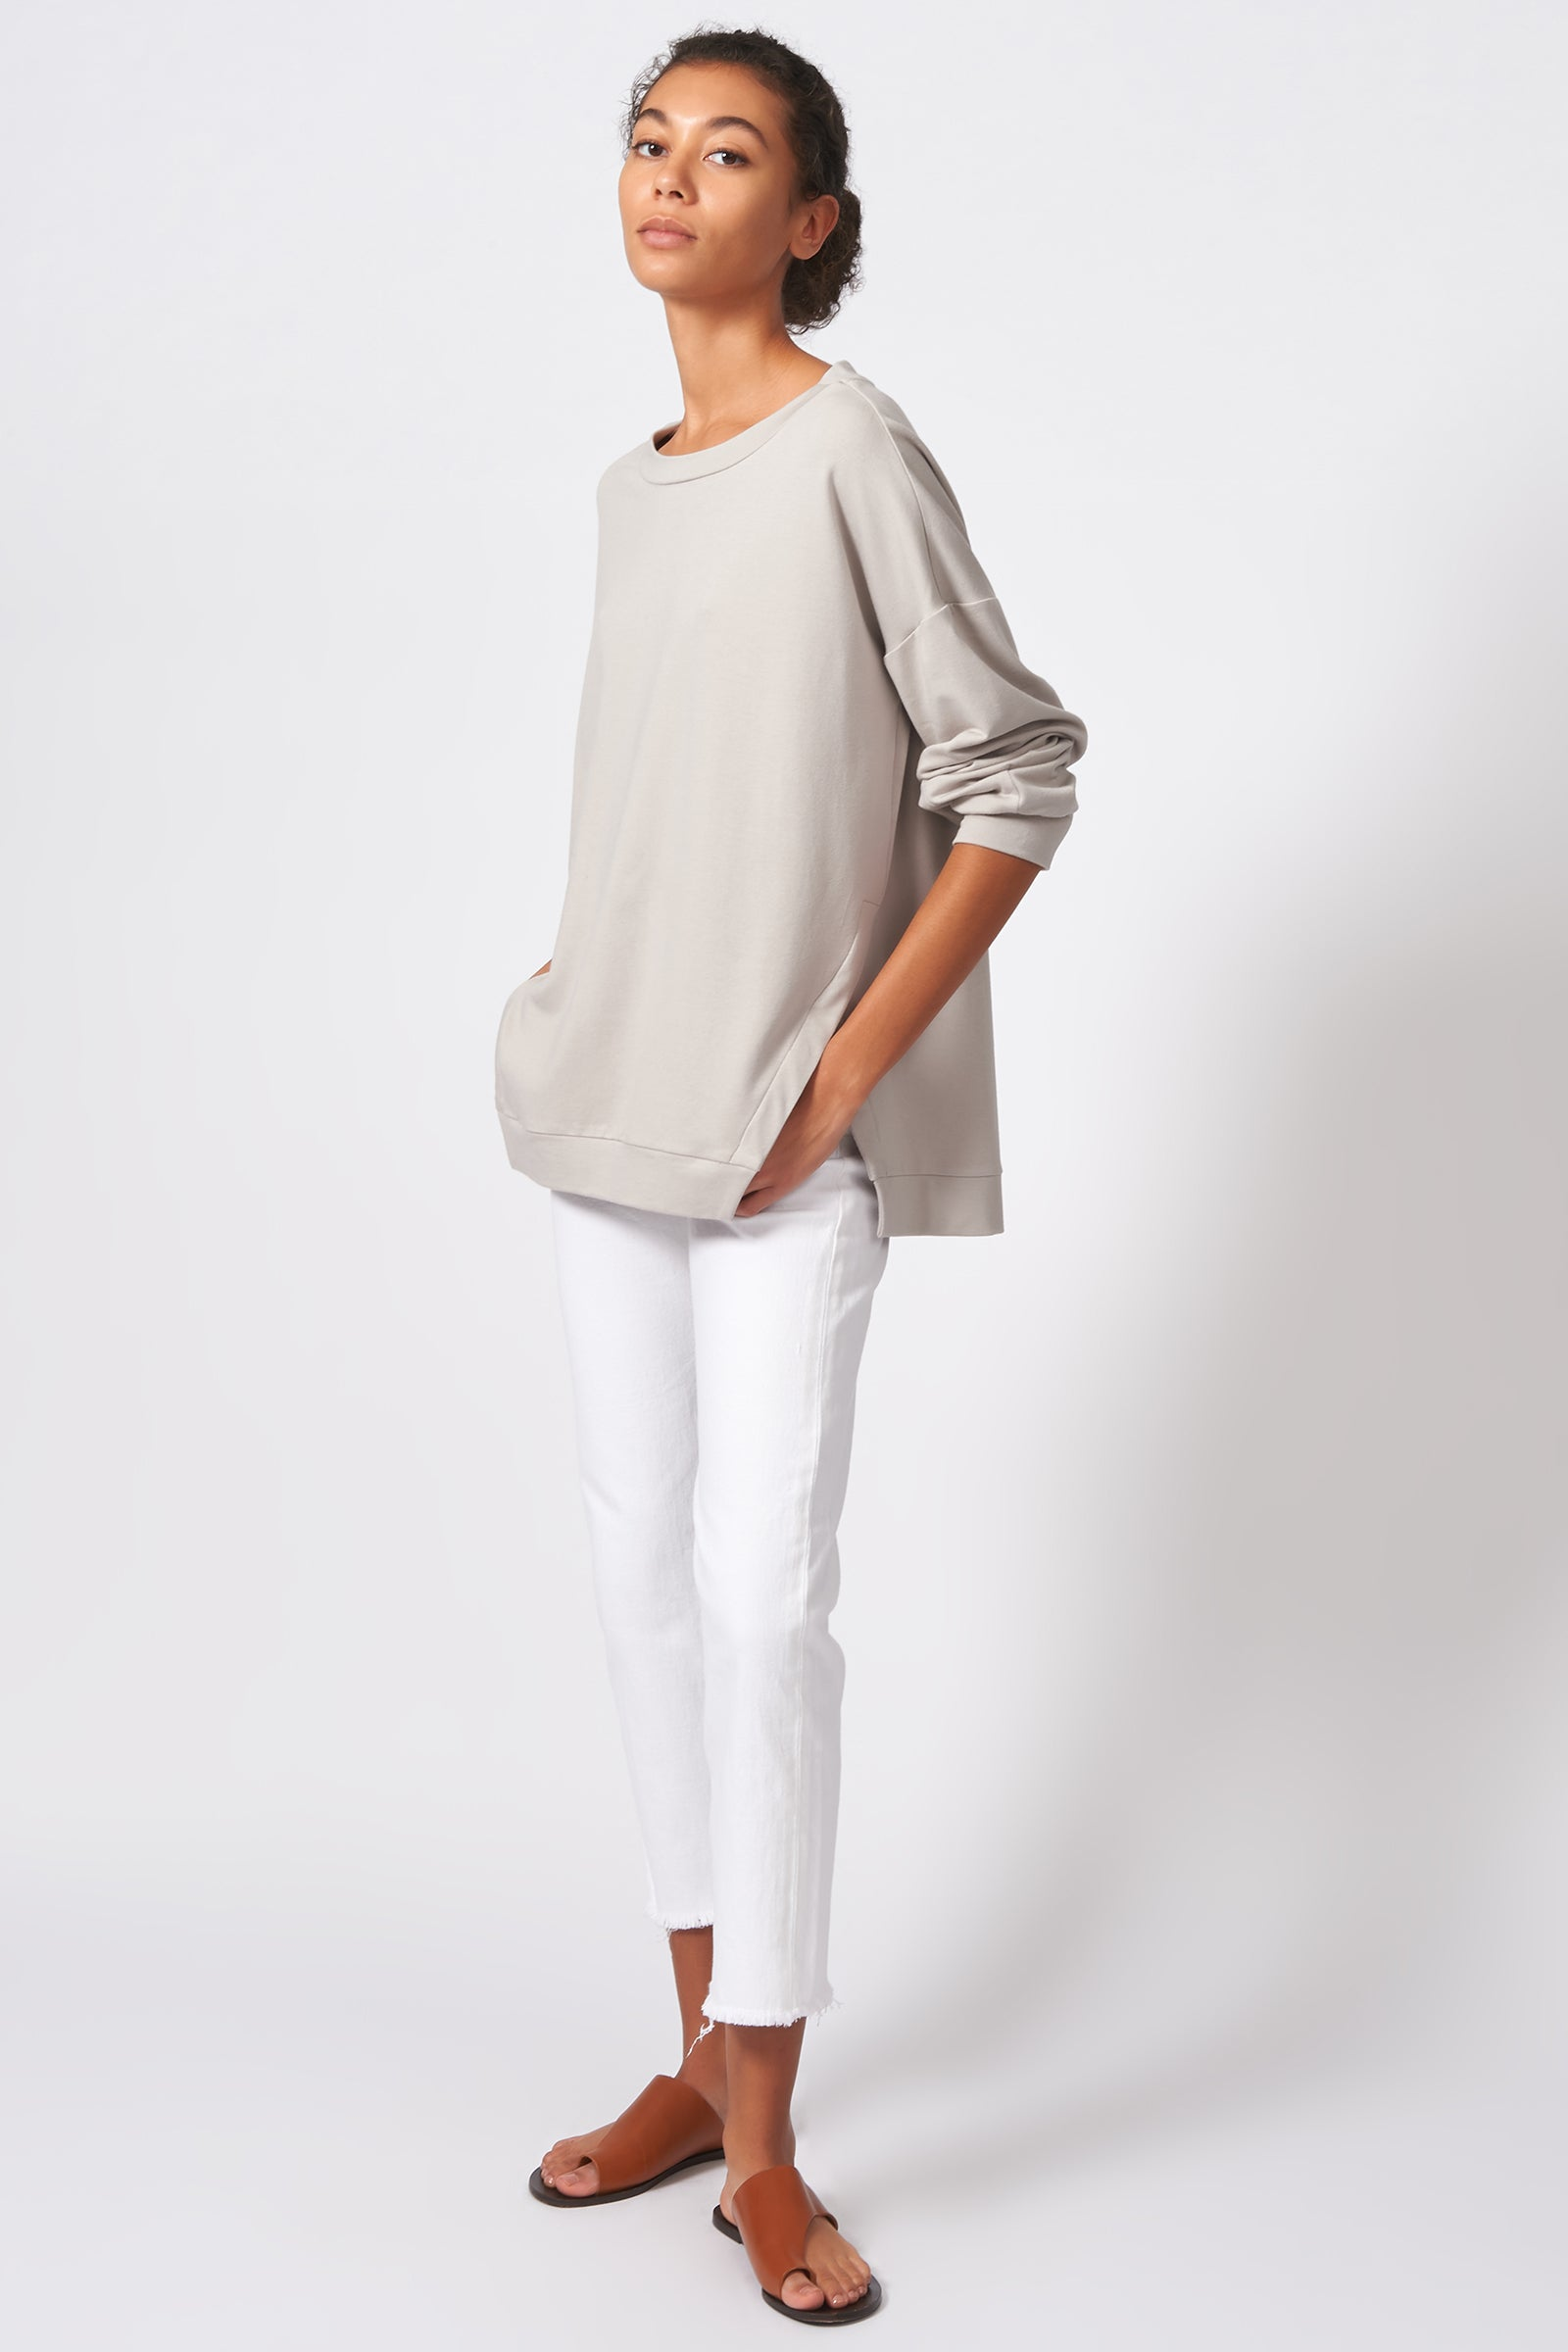 Kal Rieman Side Slit Sweatshirt in Khaki on Model Full Side View